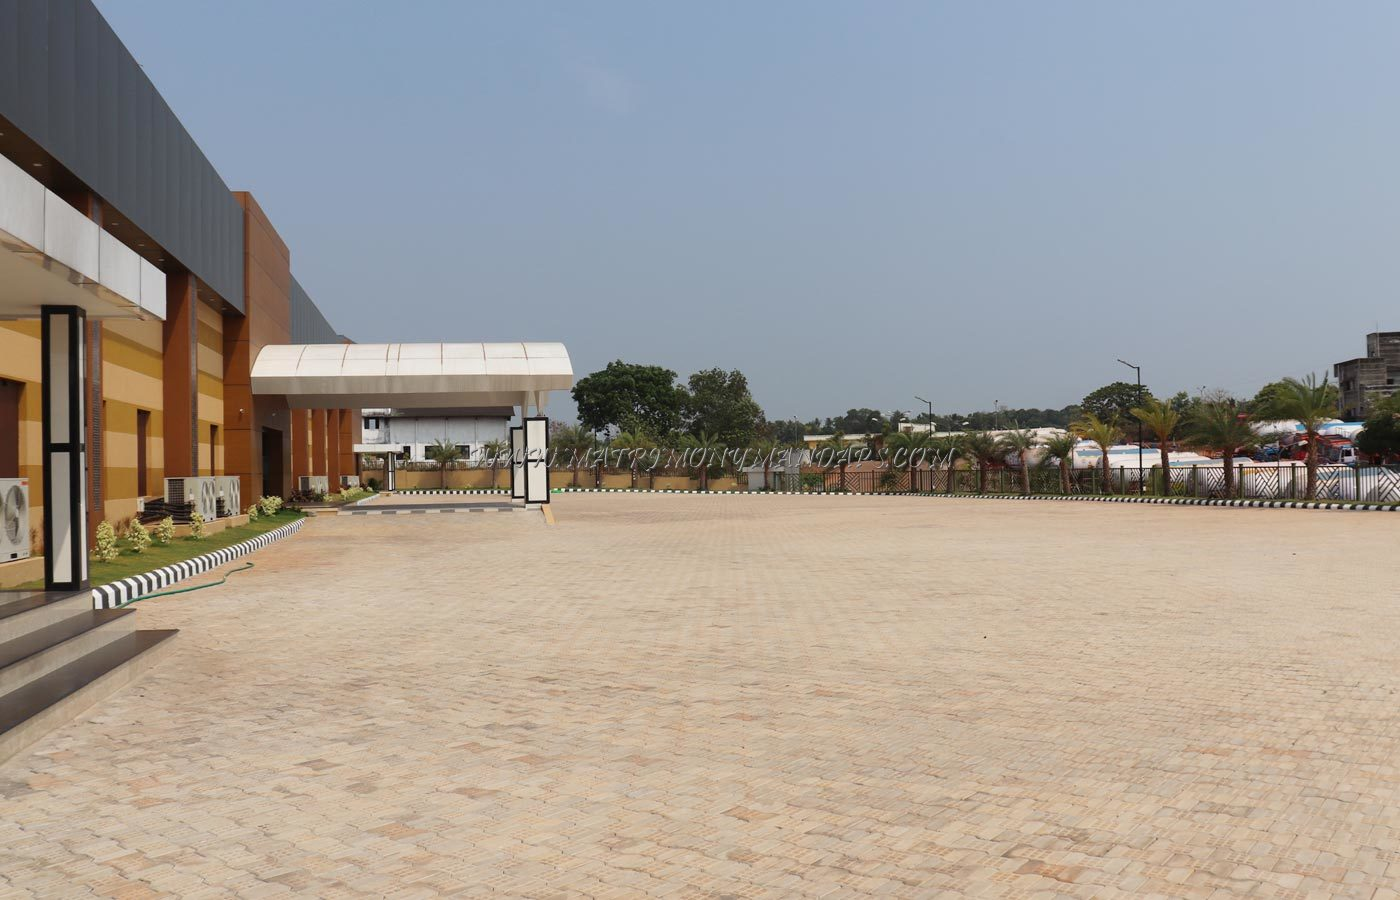 Zamra International Convention And Exhibition Centre - Outside View